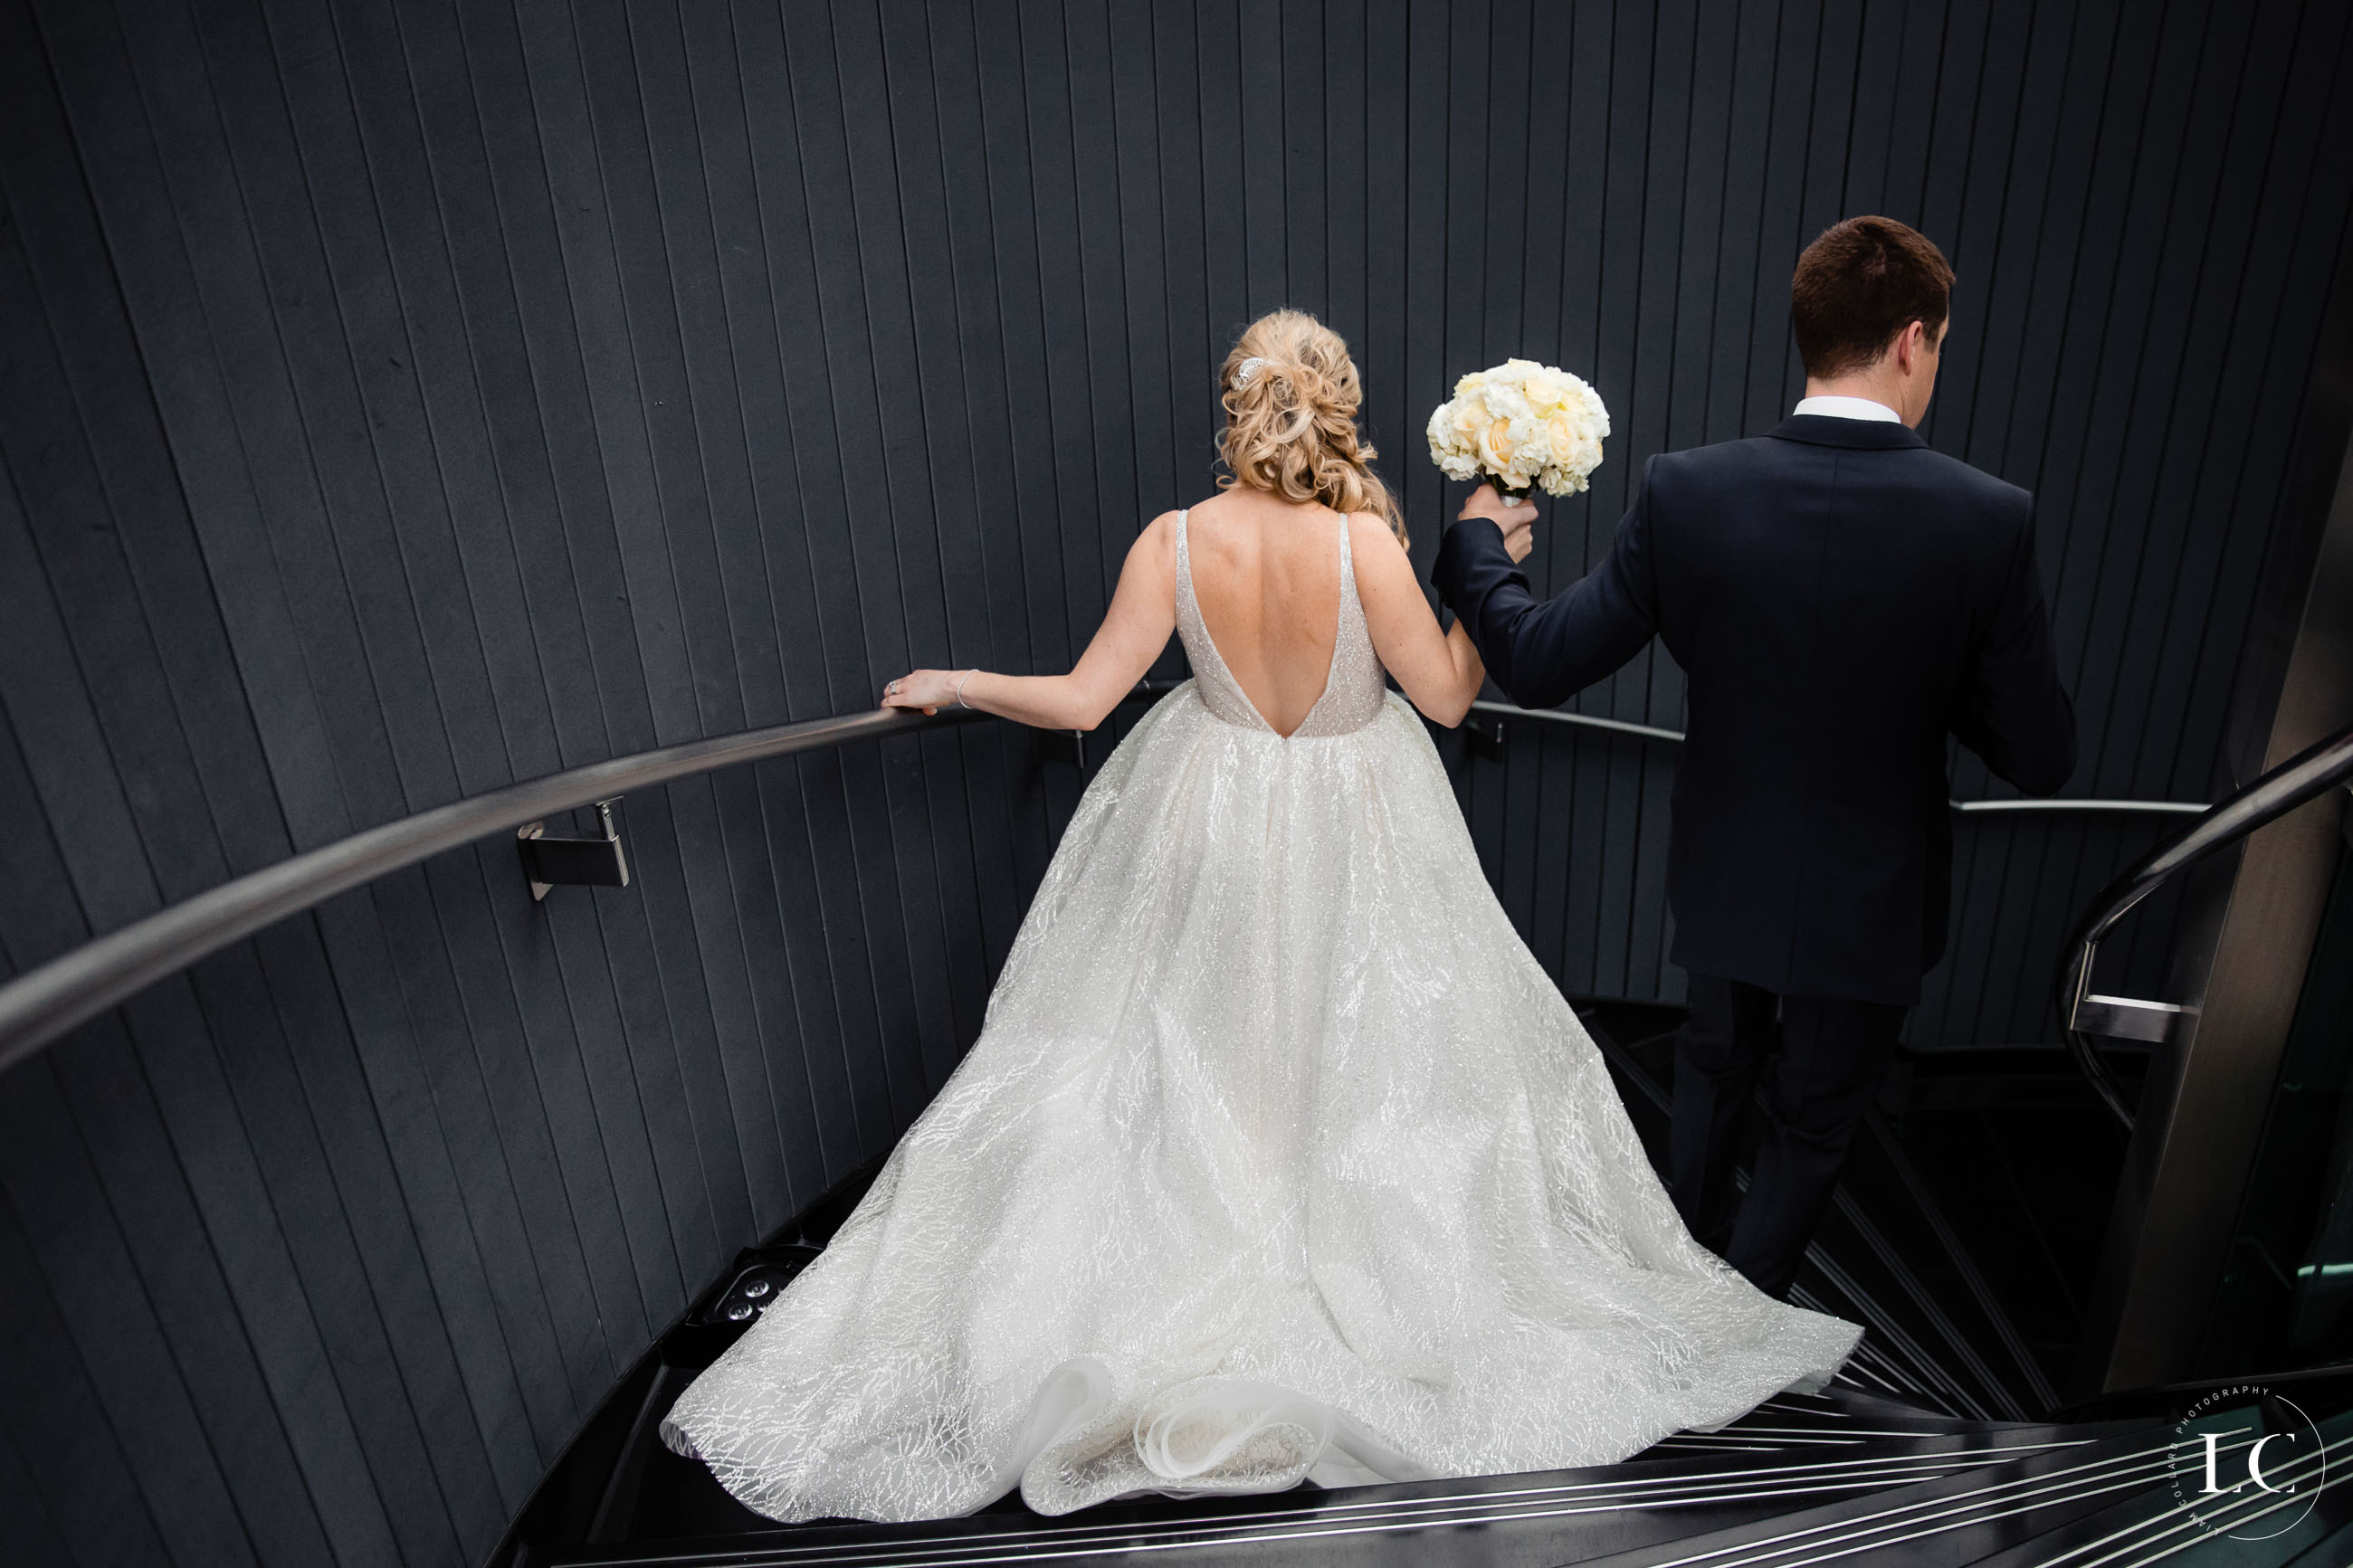 Bride and groom from behind